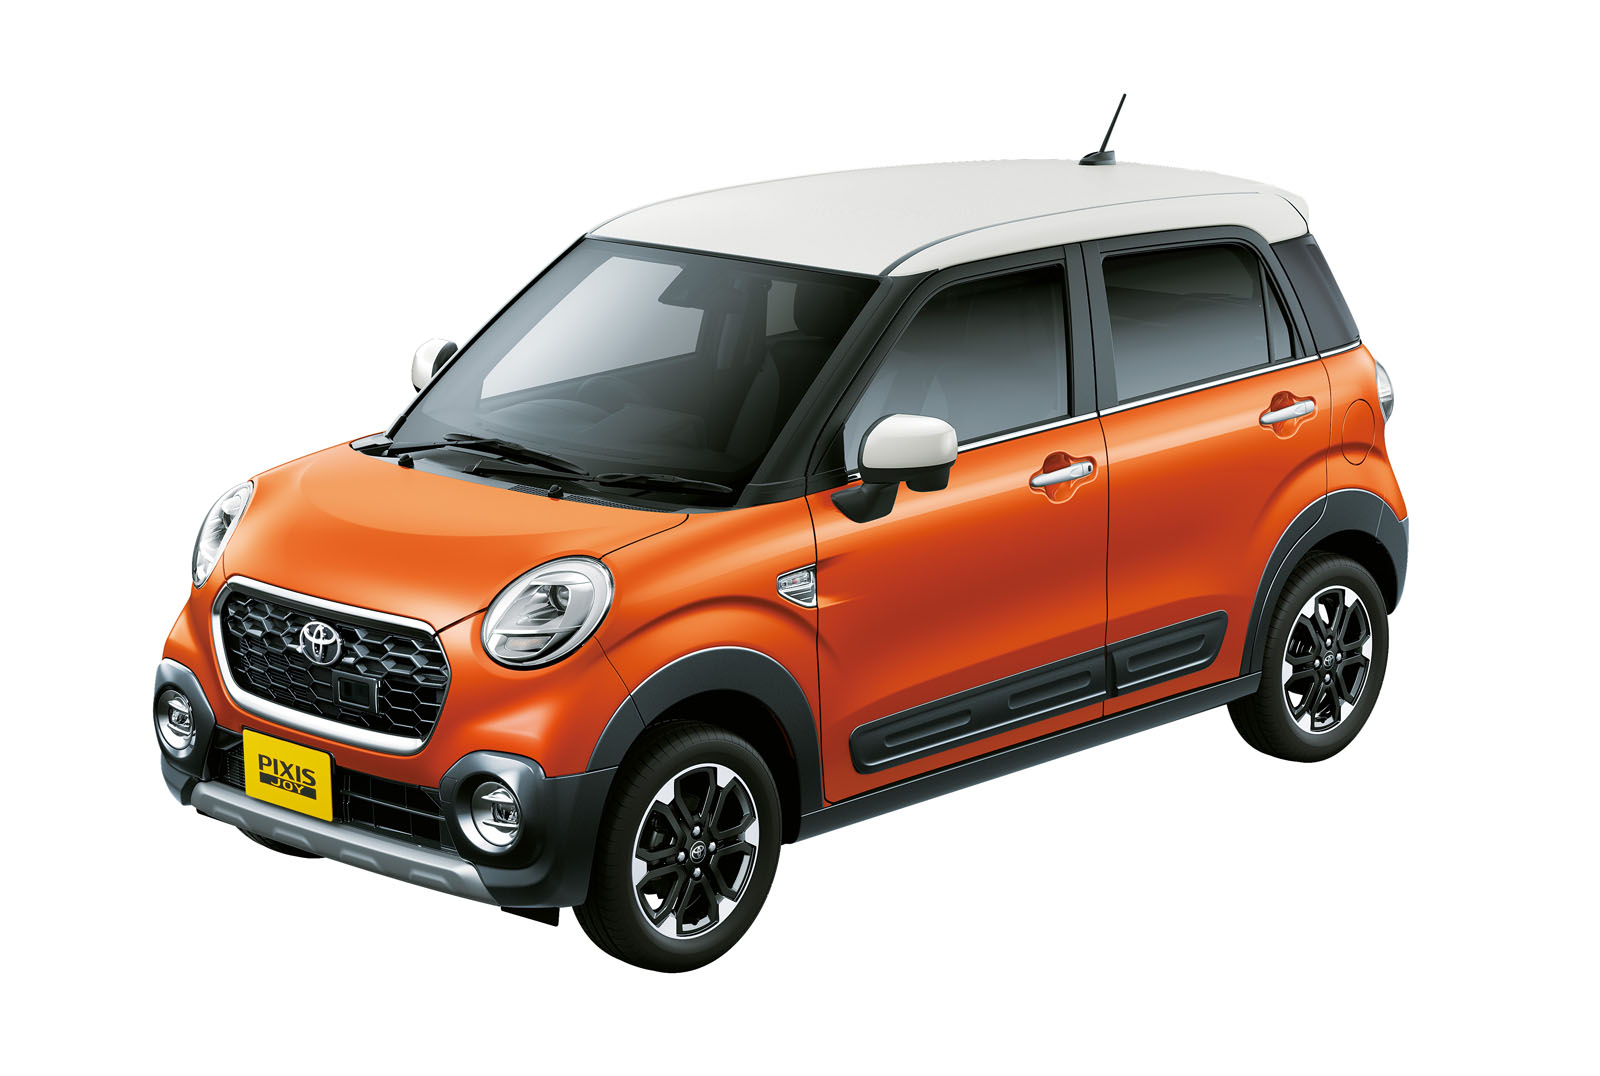 Toyota Goes Retro With Pixis Joy Kei Cars In Japan 50